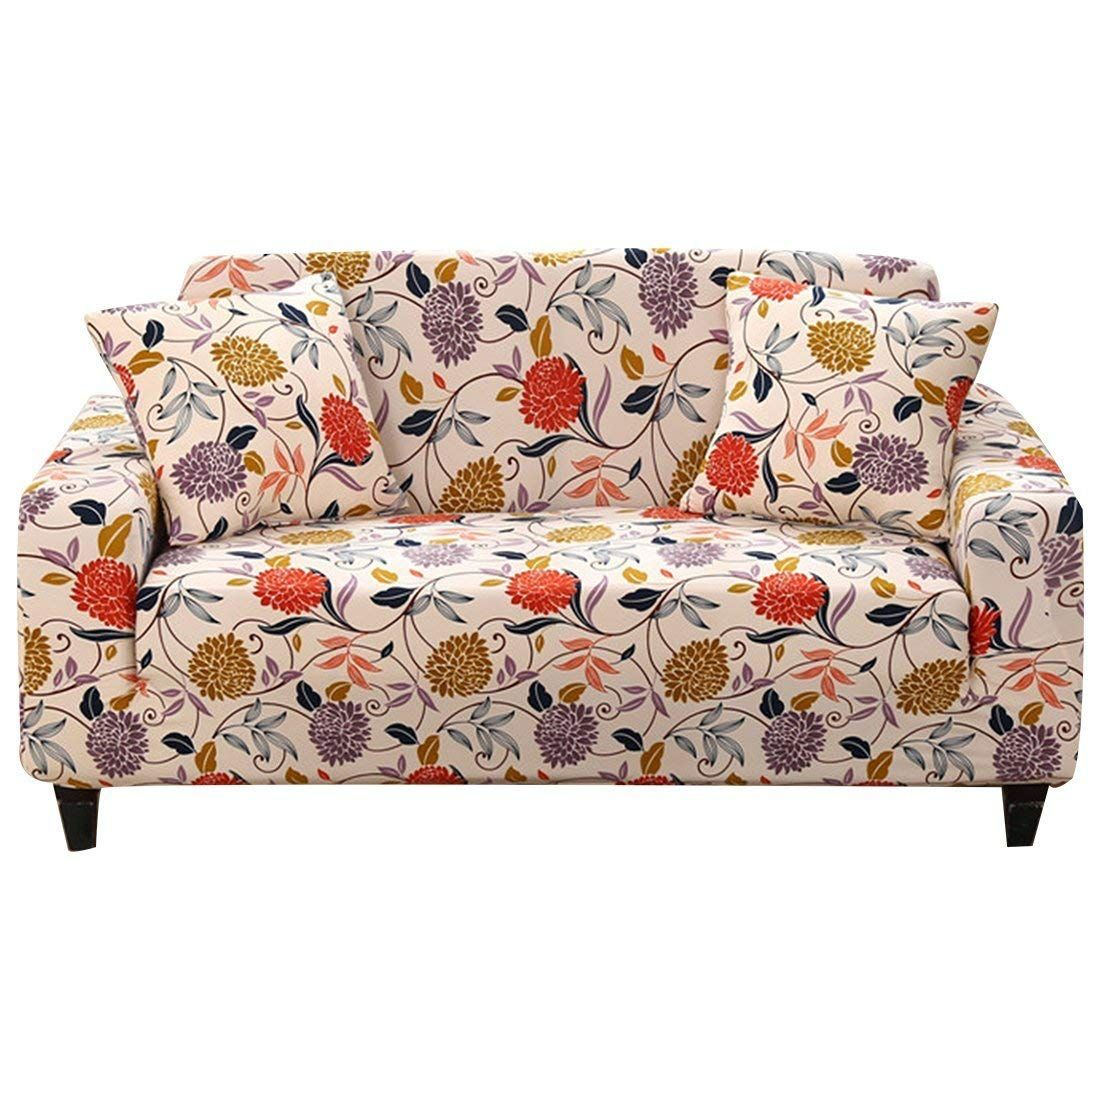 Amazon Com Forcheer Stretch Couch Covers Sofa Slipcovers Fitted Loveseat Cover Seat Furniture Prote Living Room Furniture Trends Couch Covers Slipcovered Sofa